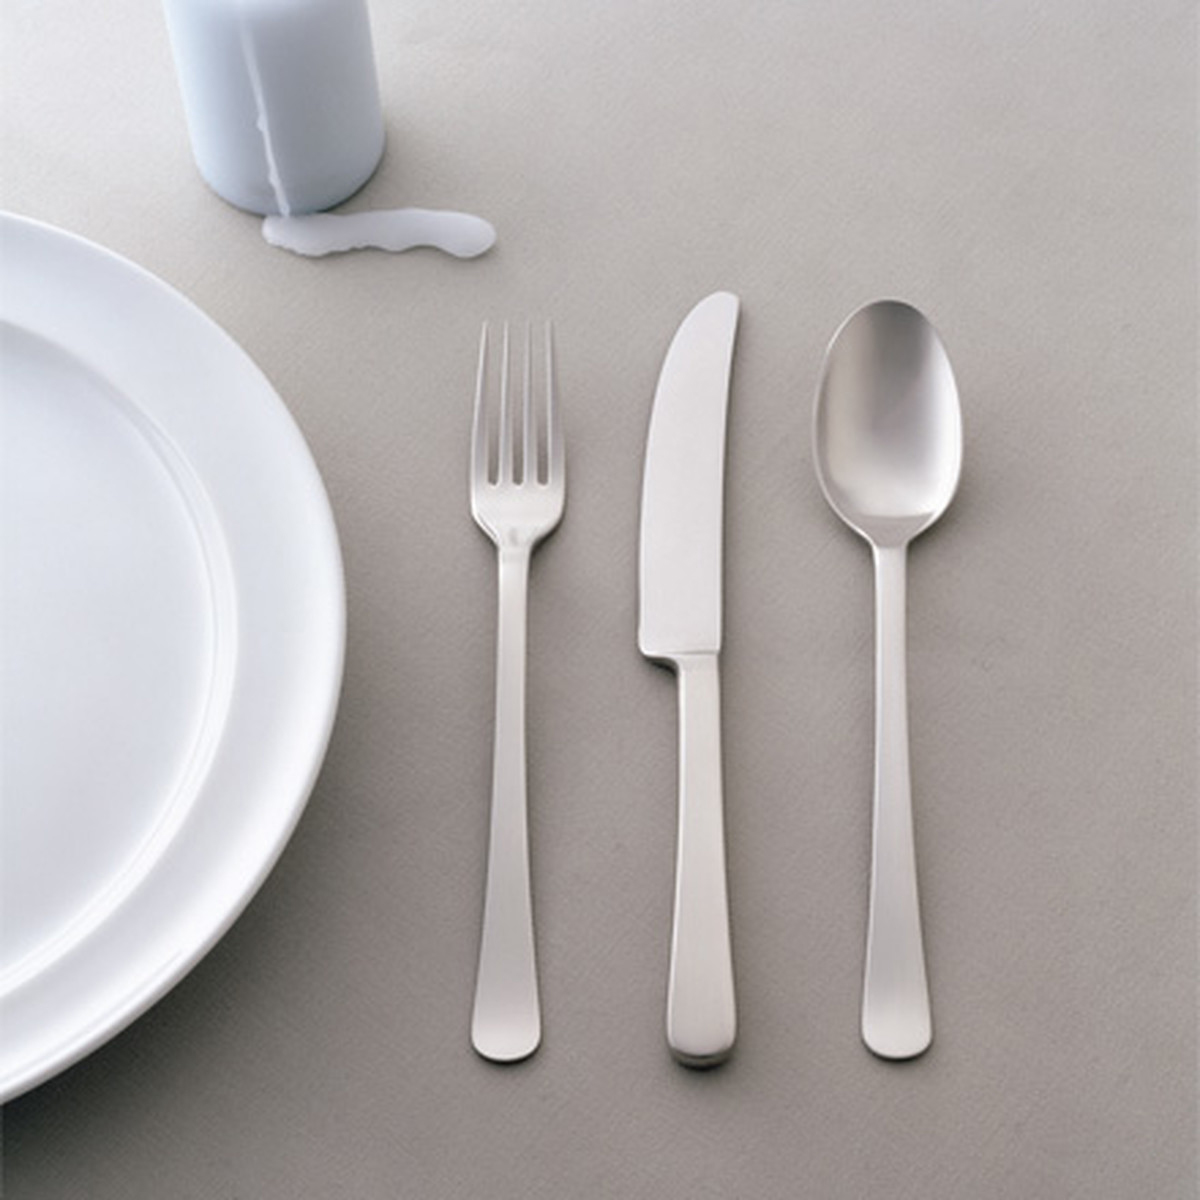 georg jensen copenhagen cutlery matte stainless steel 1 kitchen spain. Black Bedroom Furniture Sets. Home Design Ideas